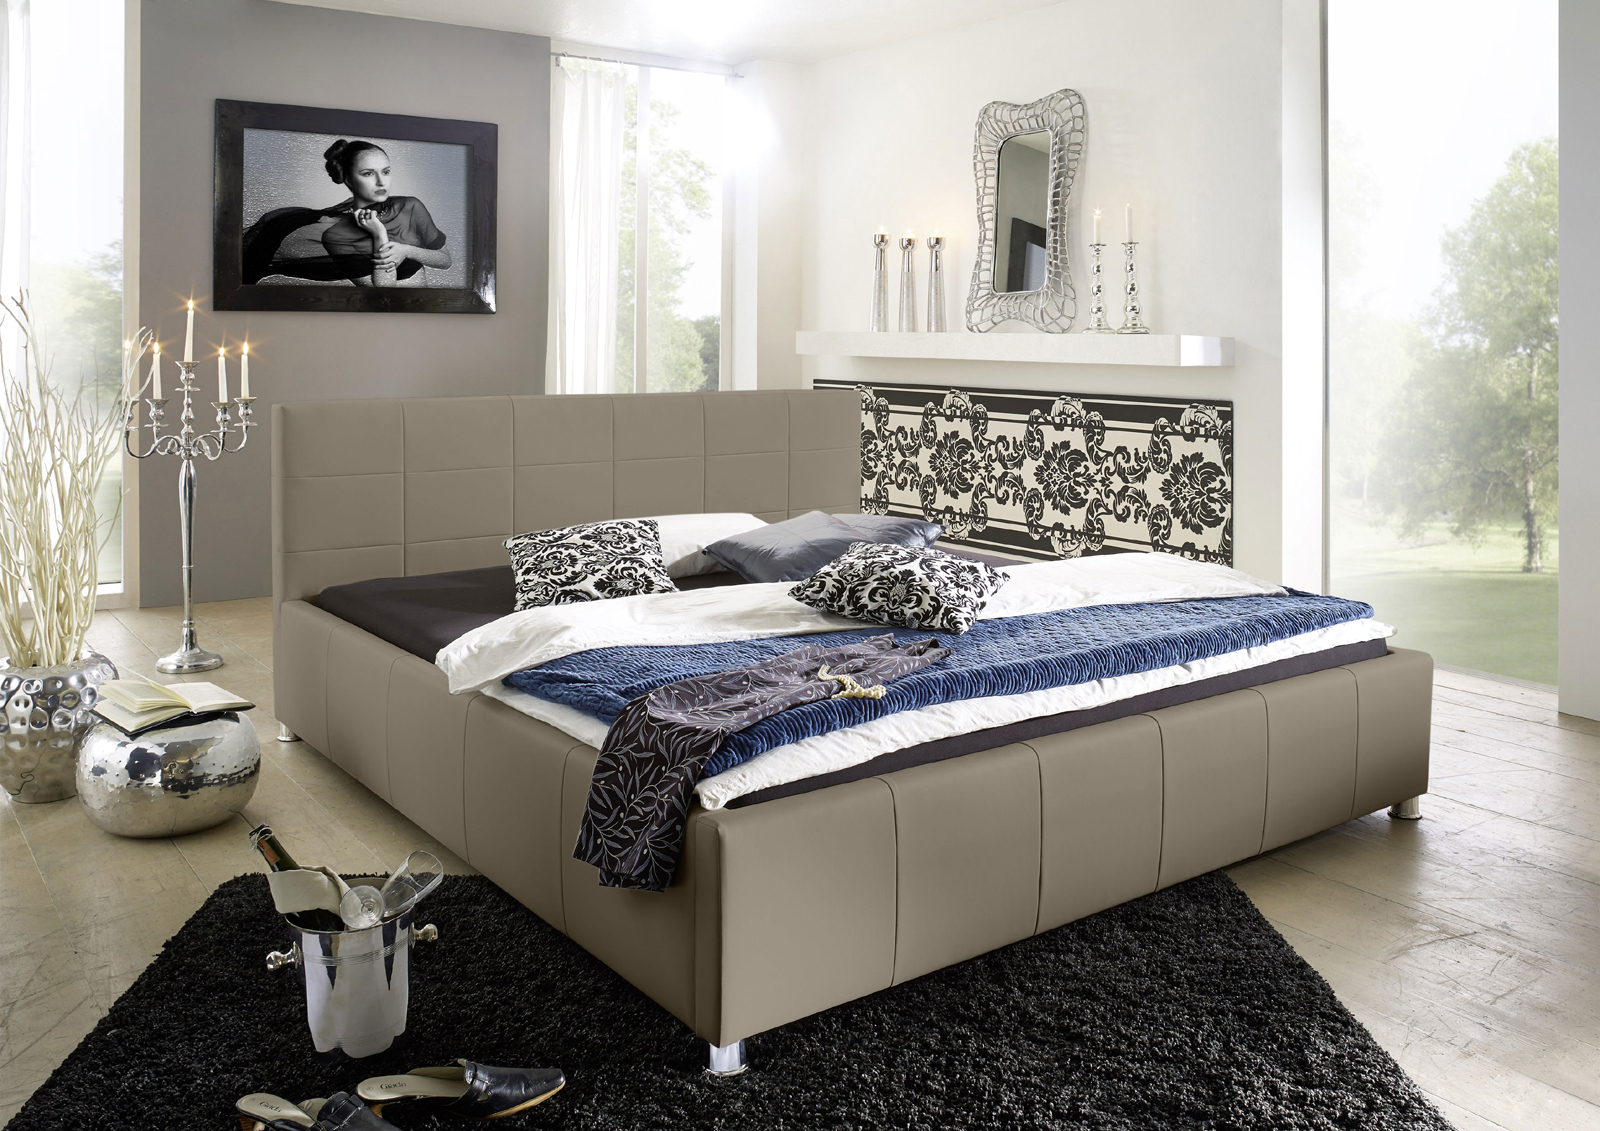 sam design bett 100 x 200 cm muddy kira auf lager. Black Bedroom Furniture Sets. Home Design Ideas